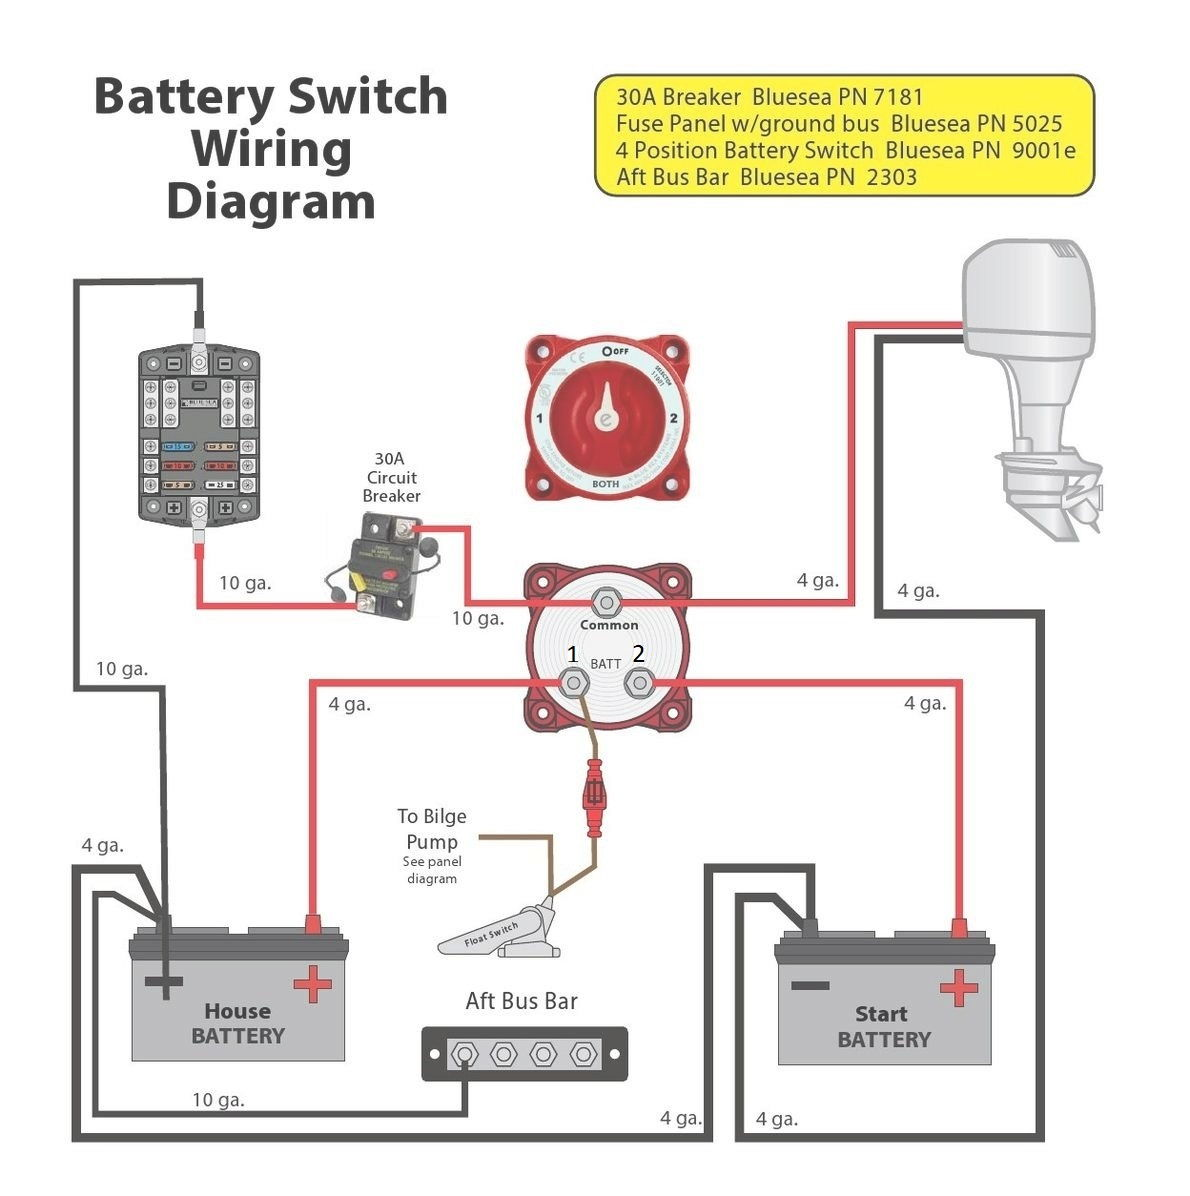 hight resolution of perko switch wiring diagram wiring diagram paper perko 8501 wiring diagram perko wiring diagram